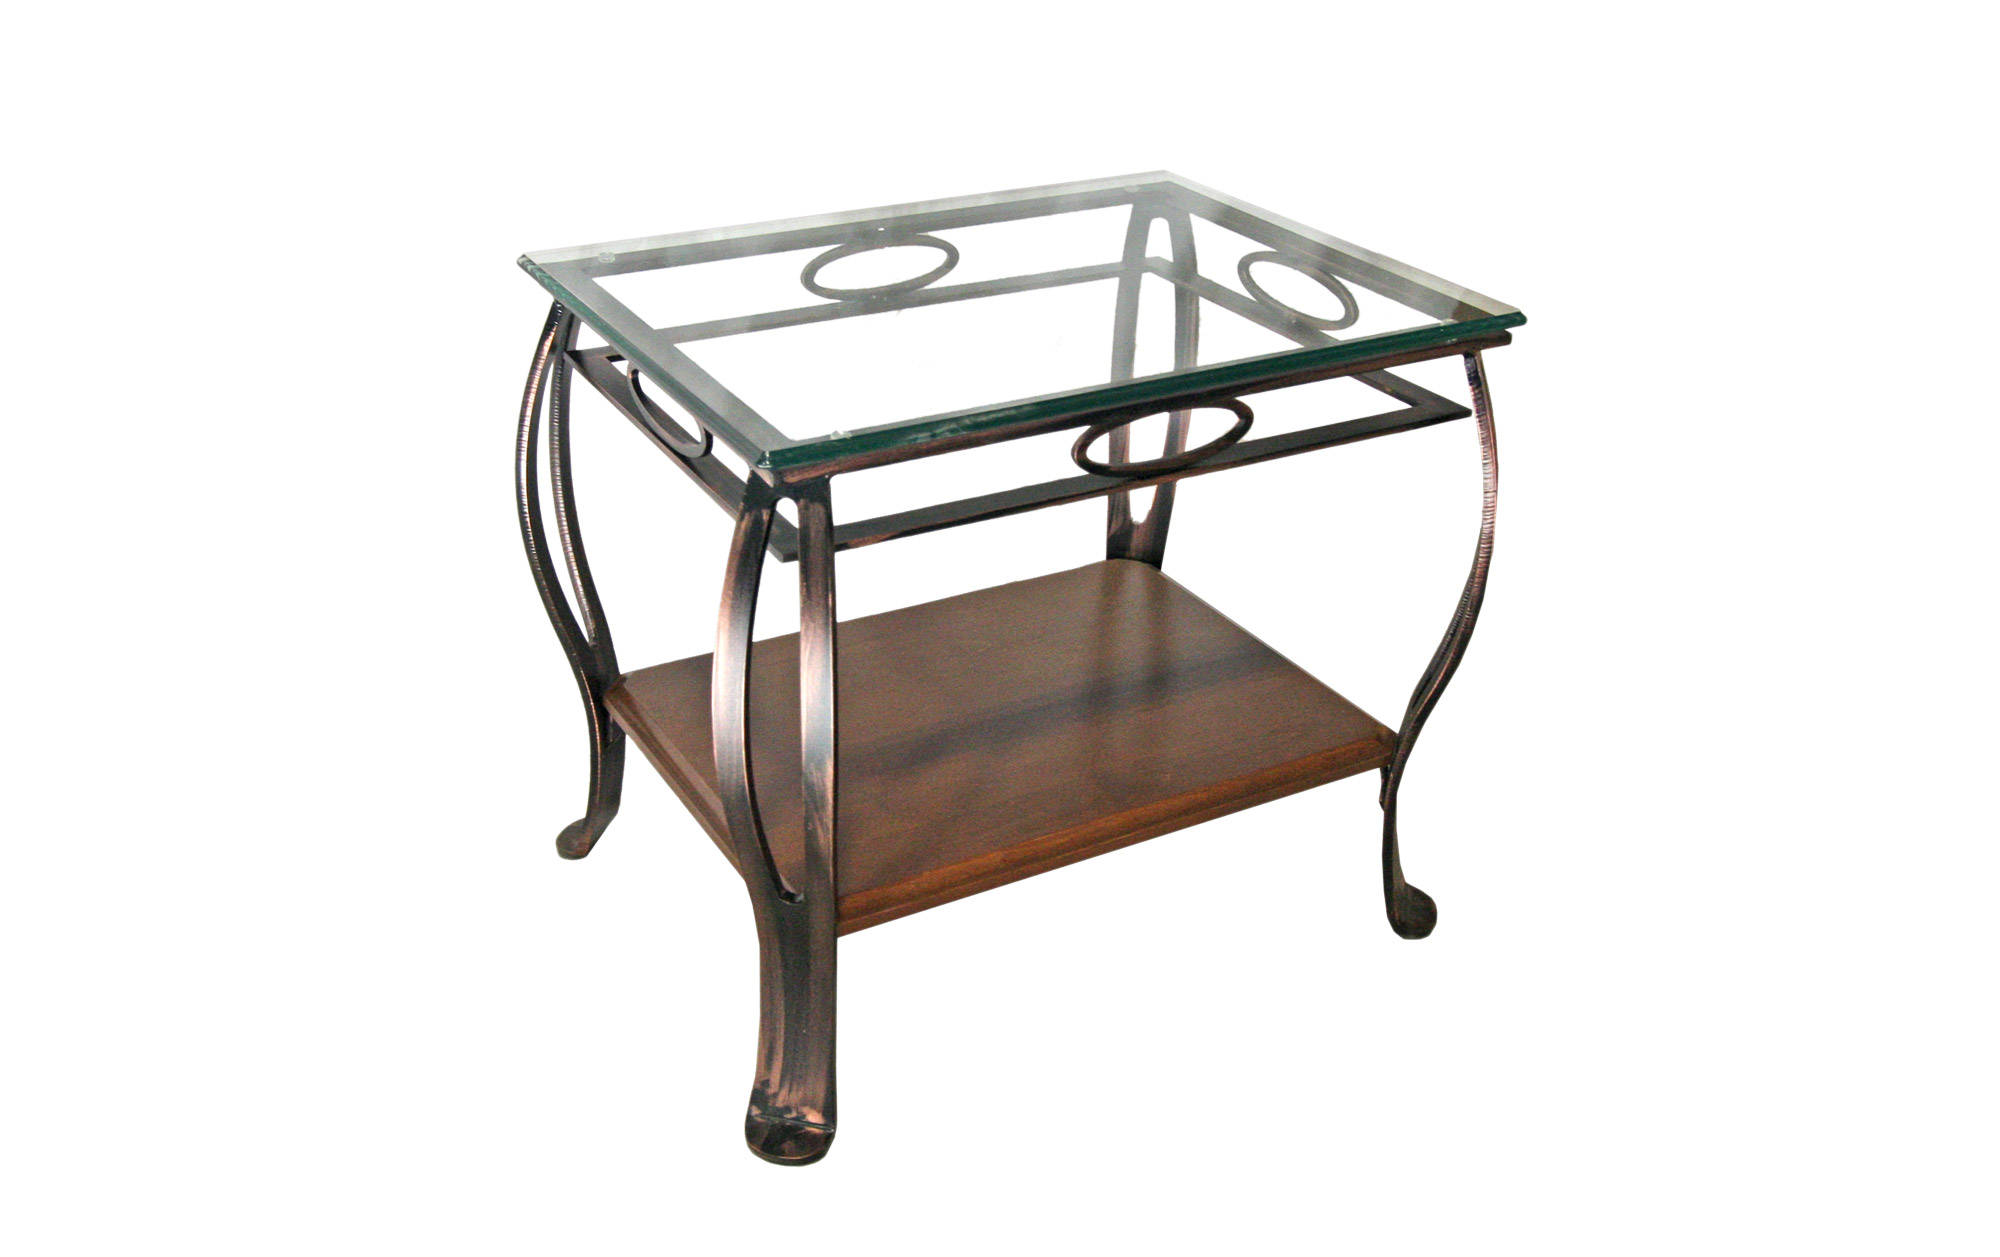 END TABLE GLASS WITH SHELF